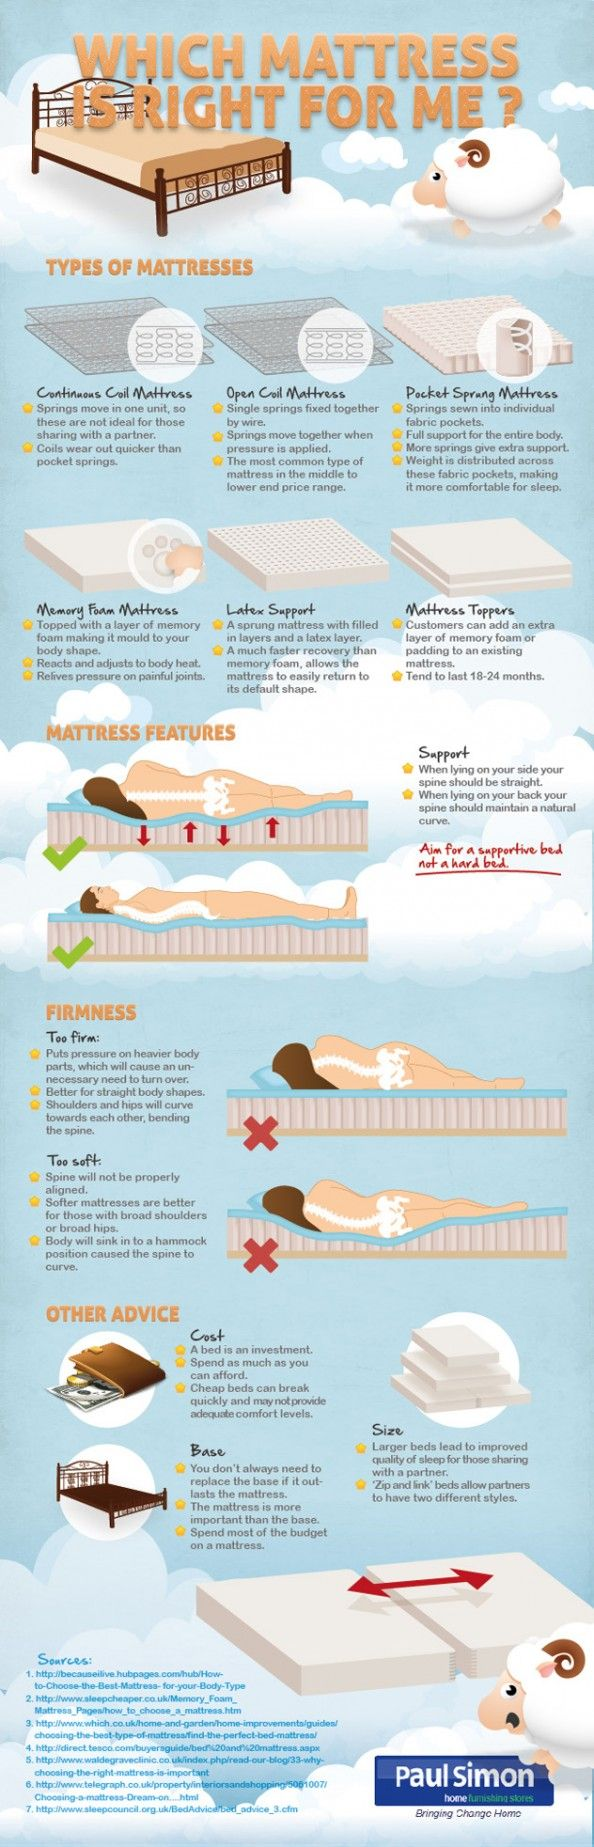 19 best mattresses images on pinterest mattresses infographic and